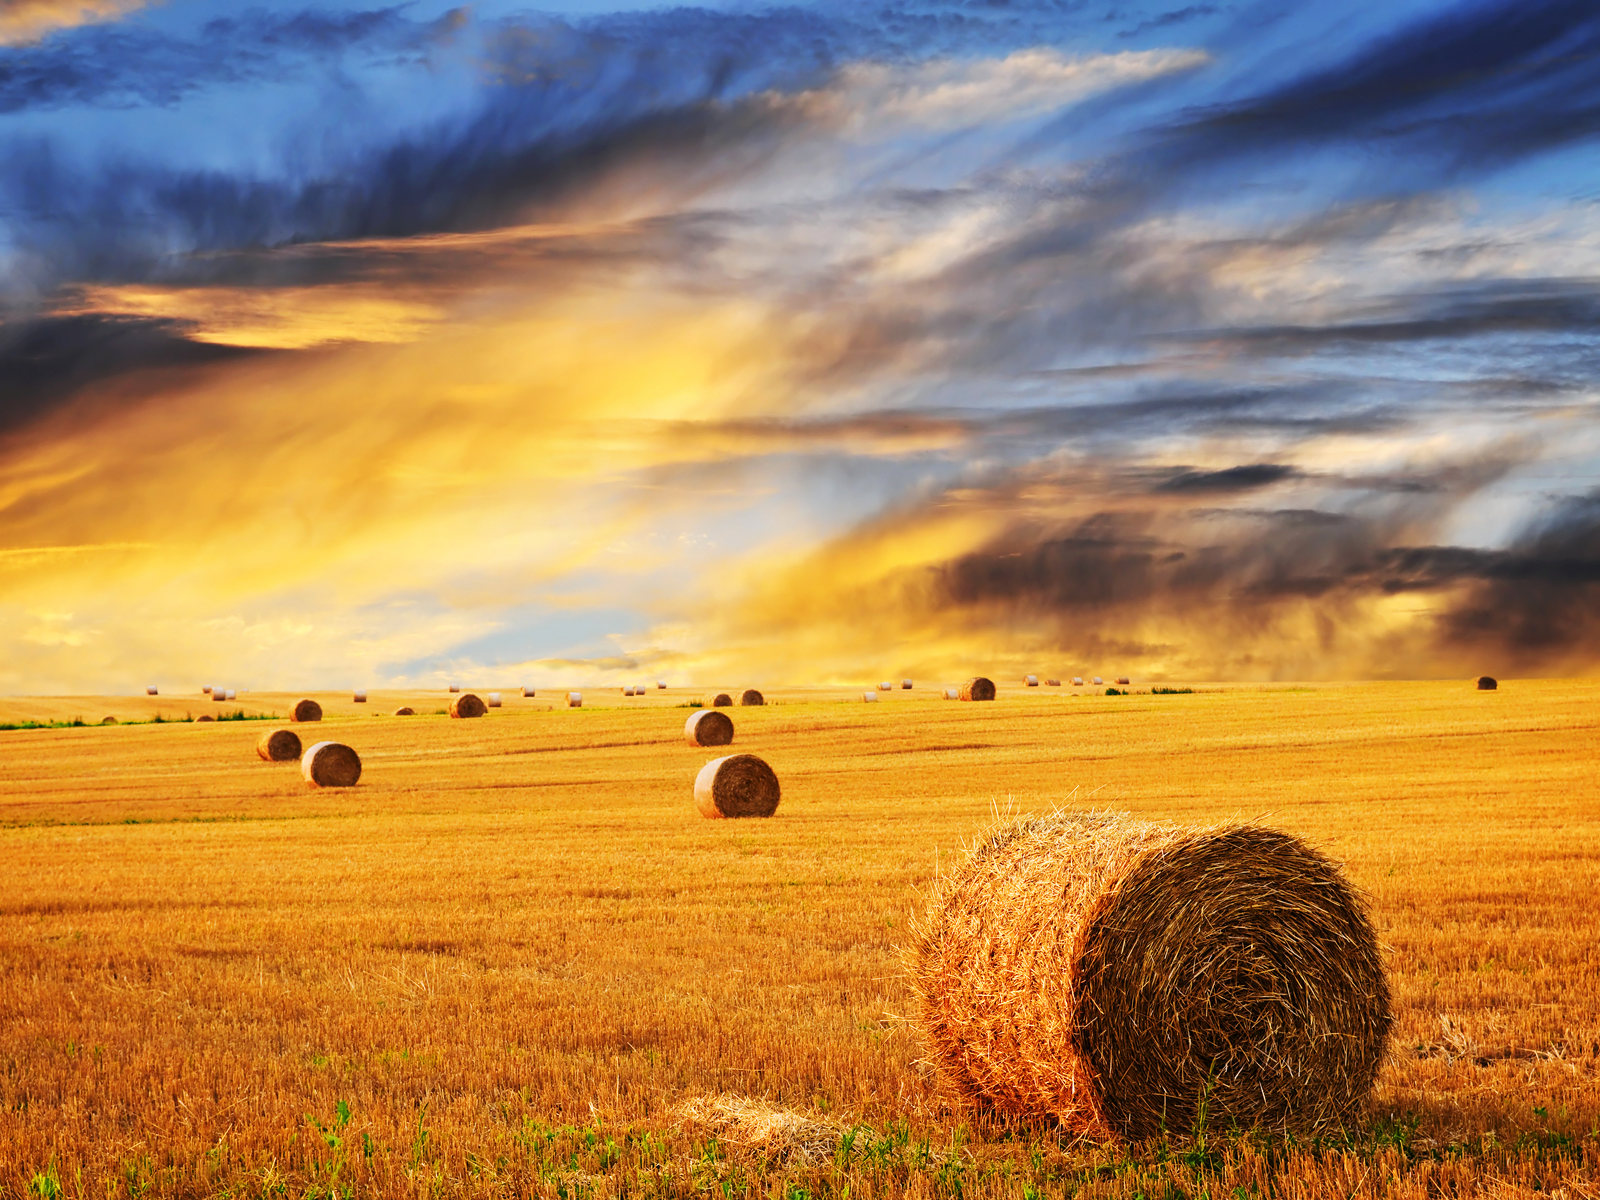 wallpapers hd desktop wallpapers online most spectacular farm hd 1600x1200